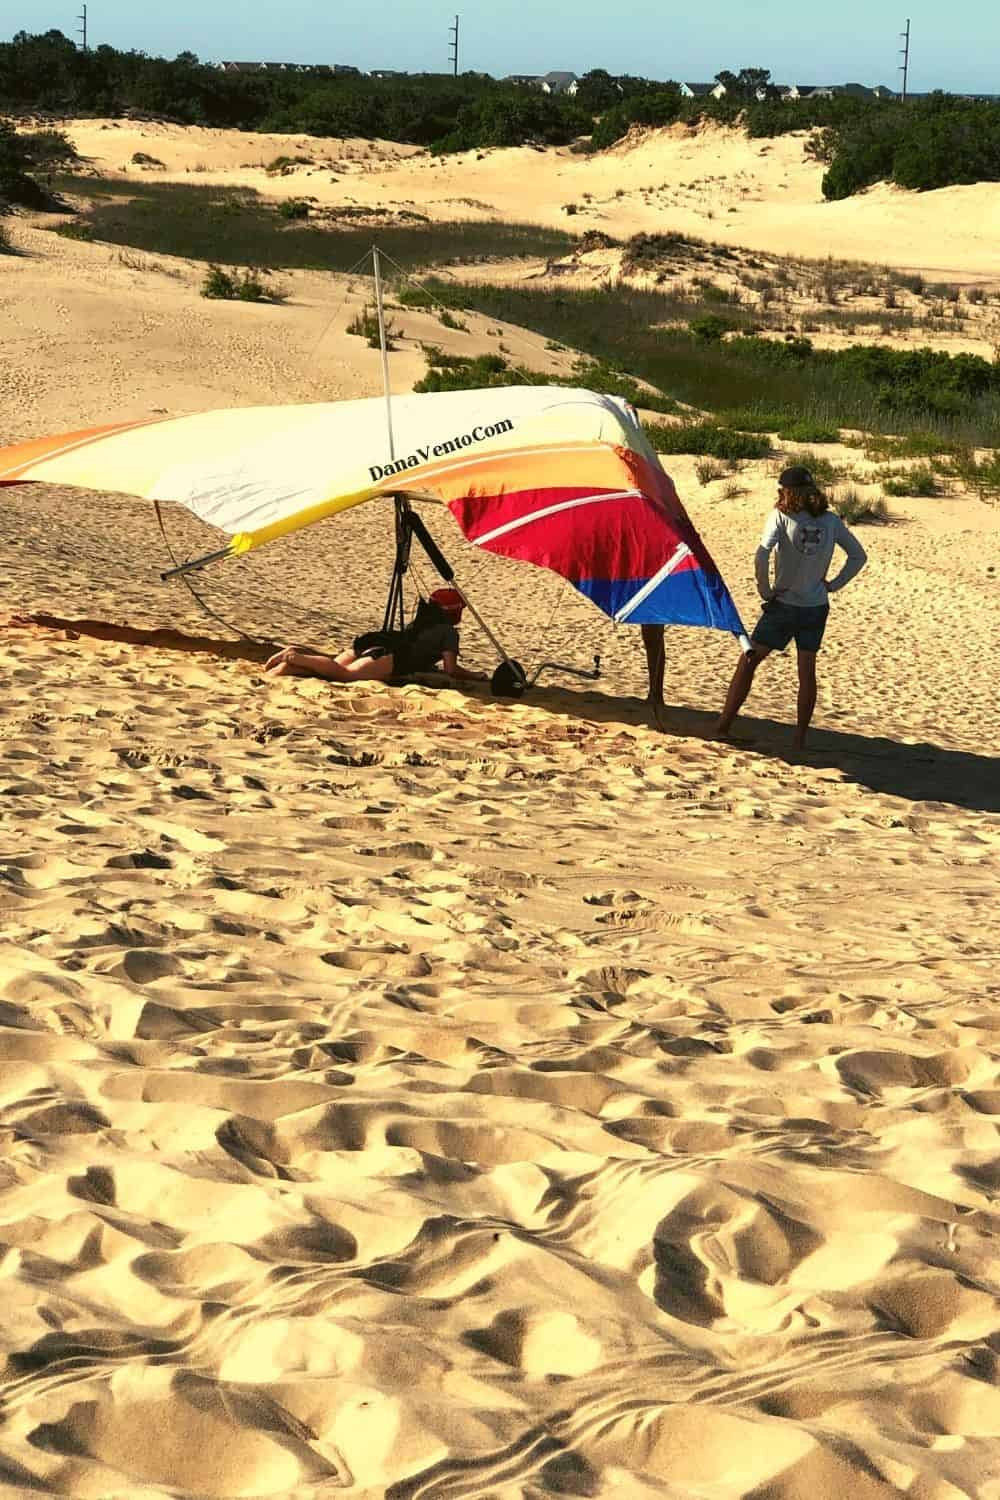 1 Extremely Dynamic Outer Banks Hang Gliding Experience I'll Never Forget